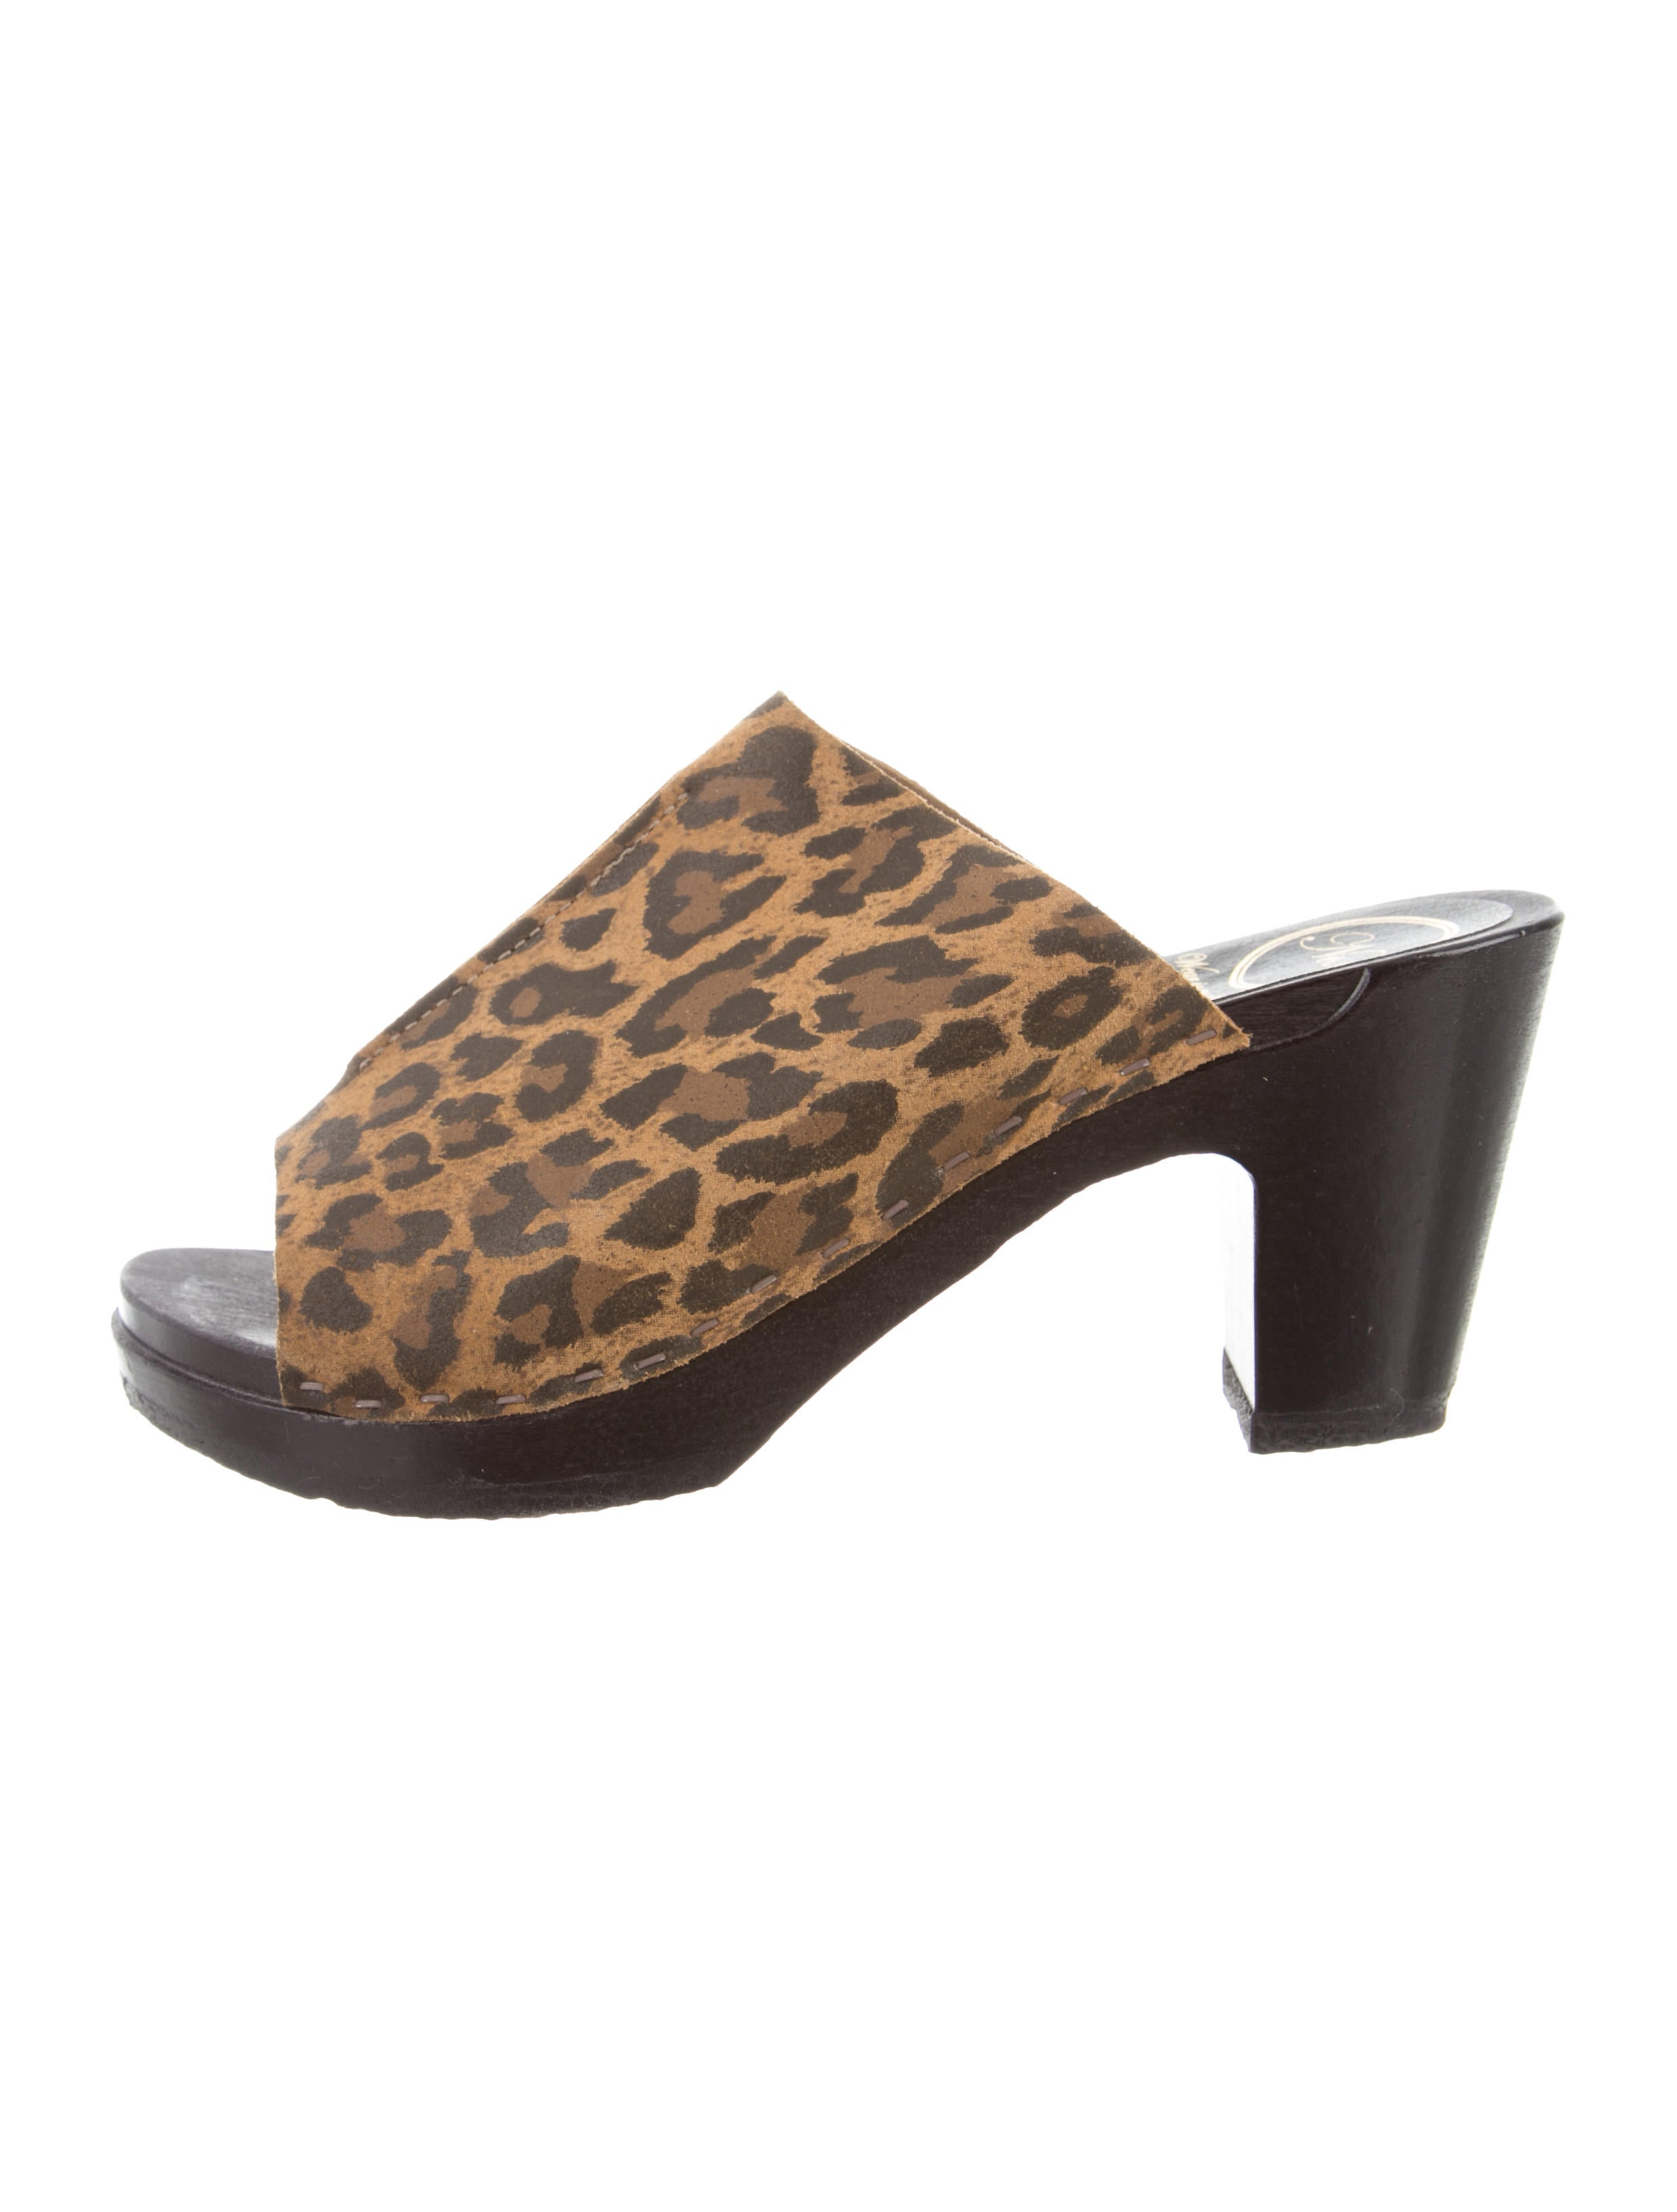 No.6 Leopard Print Slide Sandals